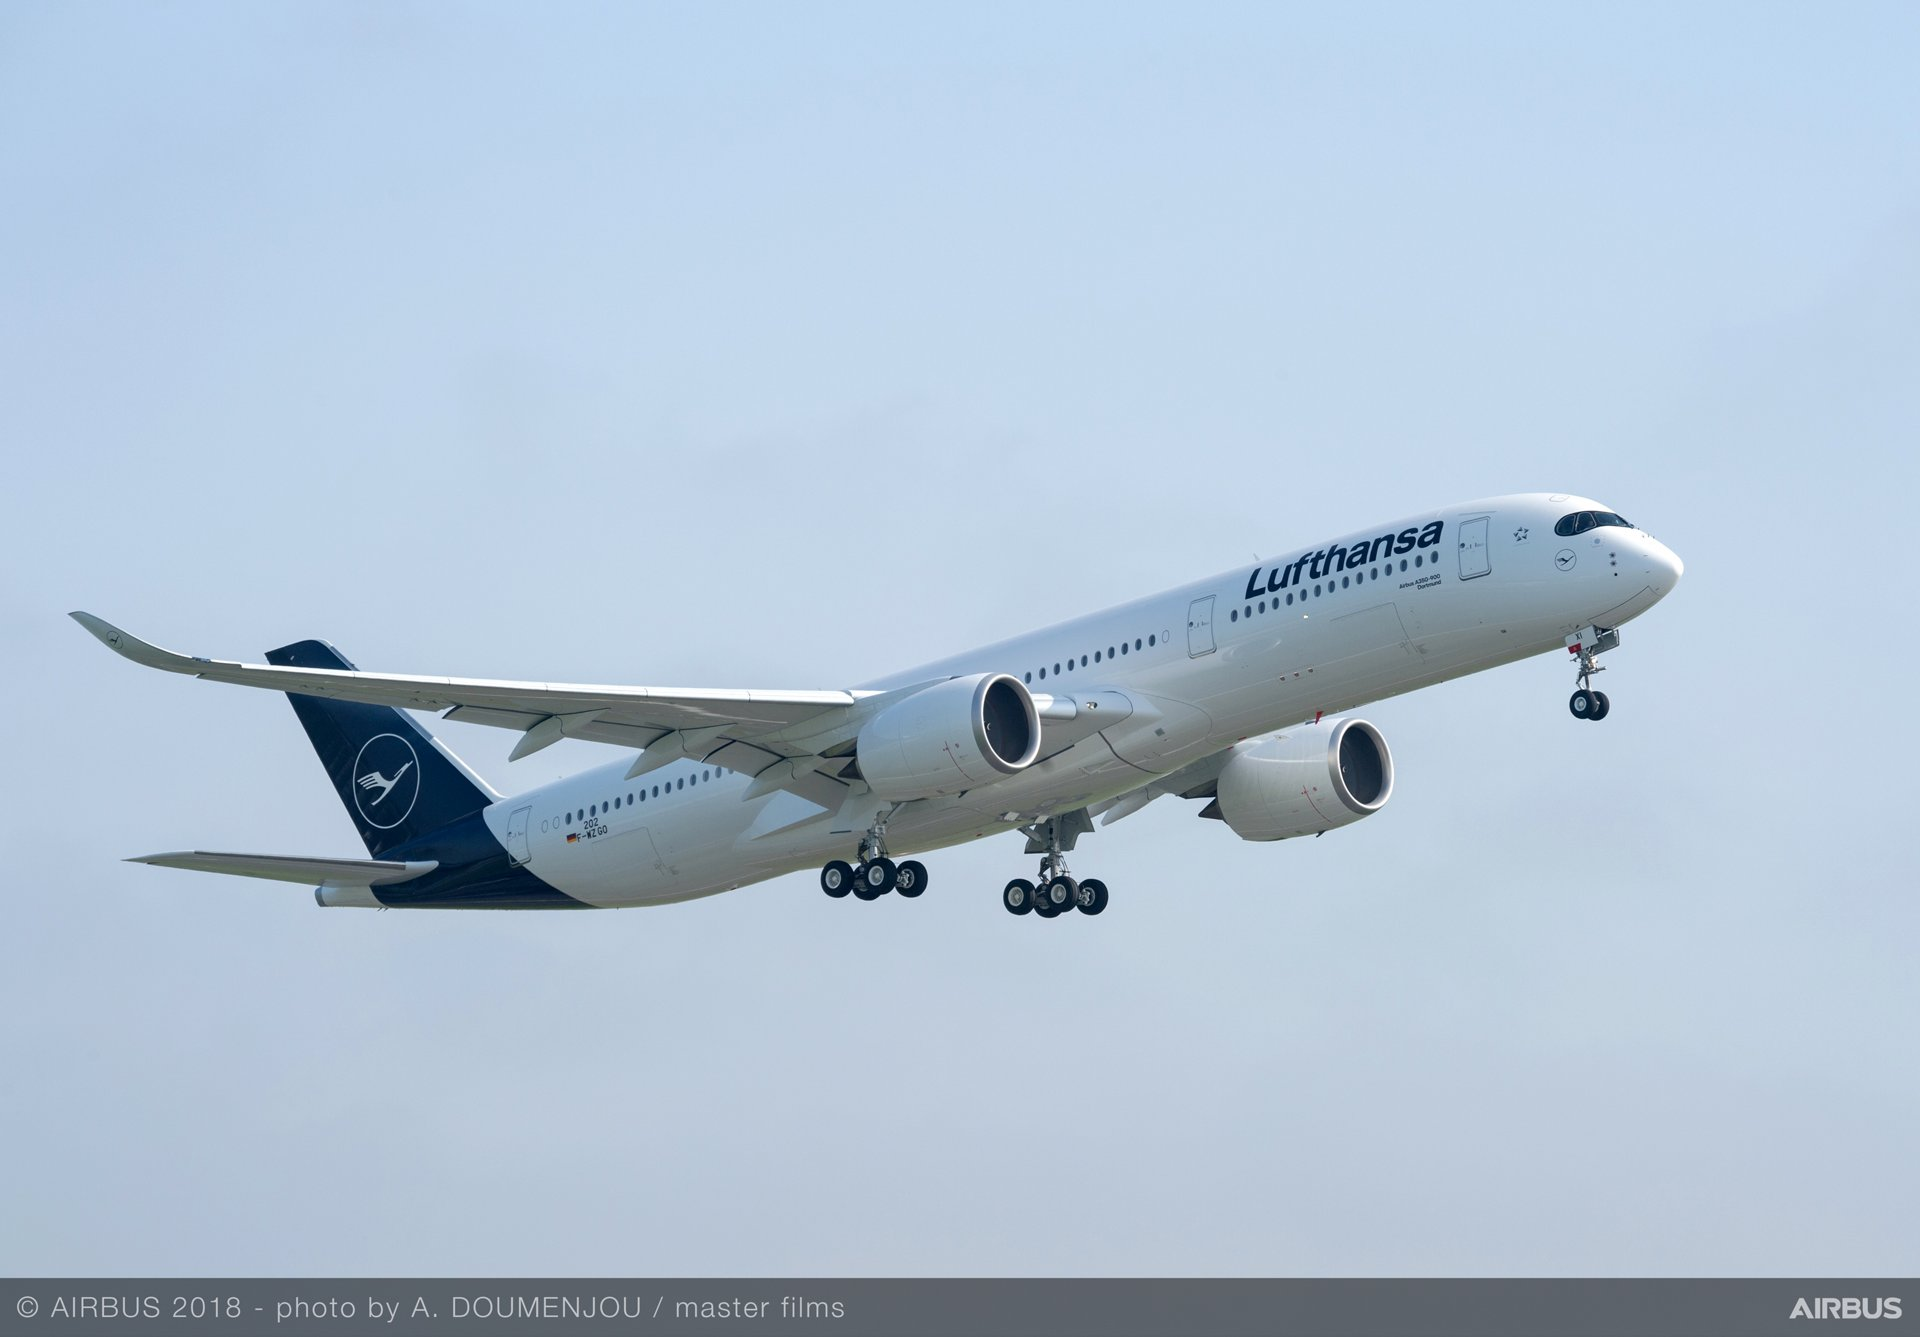 Lufthansa Group is the largest airline customer for Airbus aircraft, which includes 45 A350 XWB jetliners on order as of March 2019